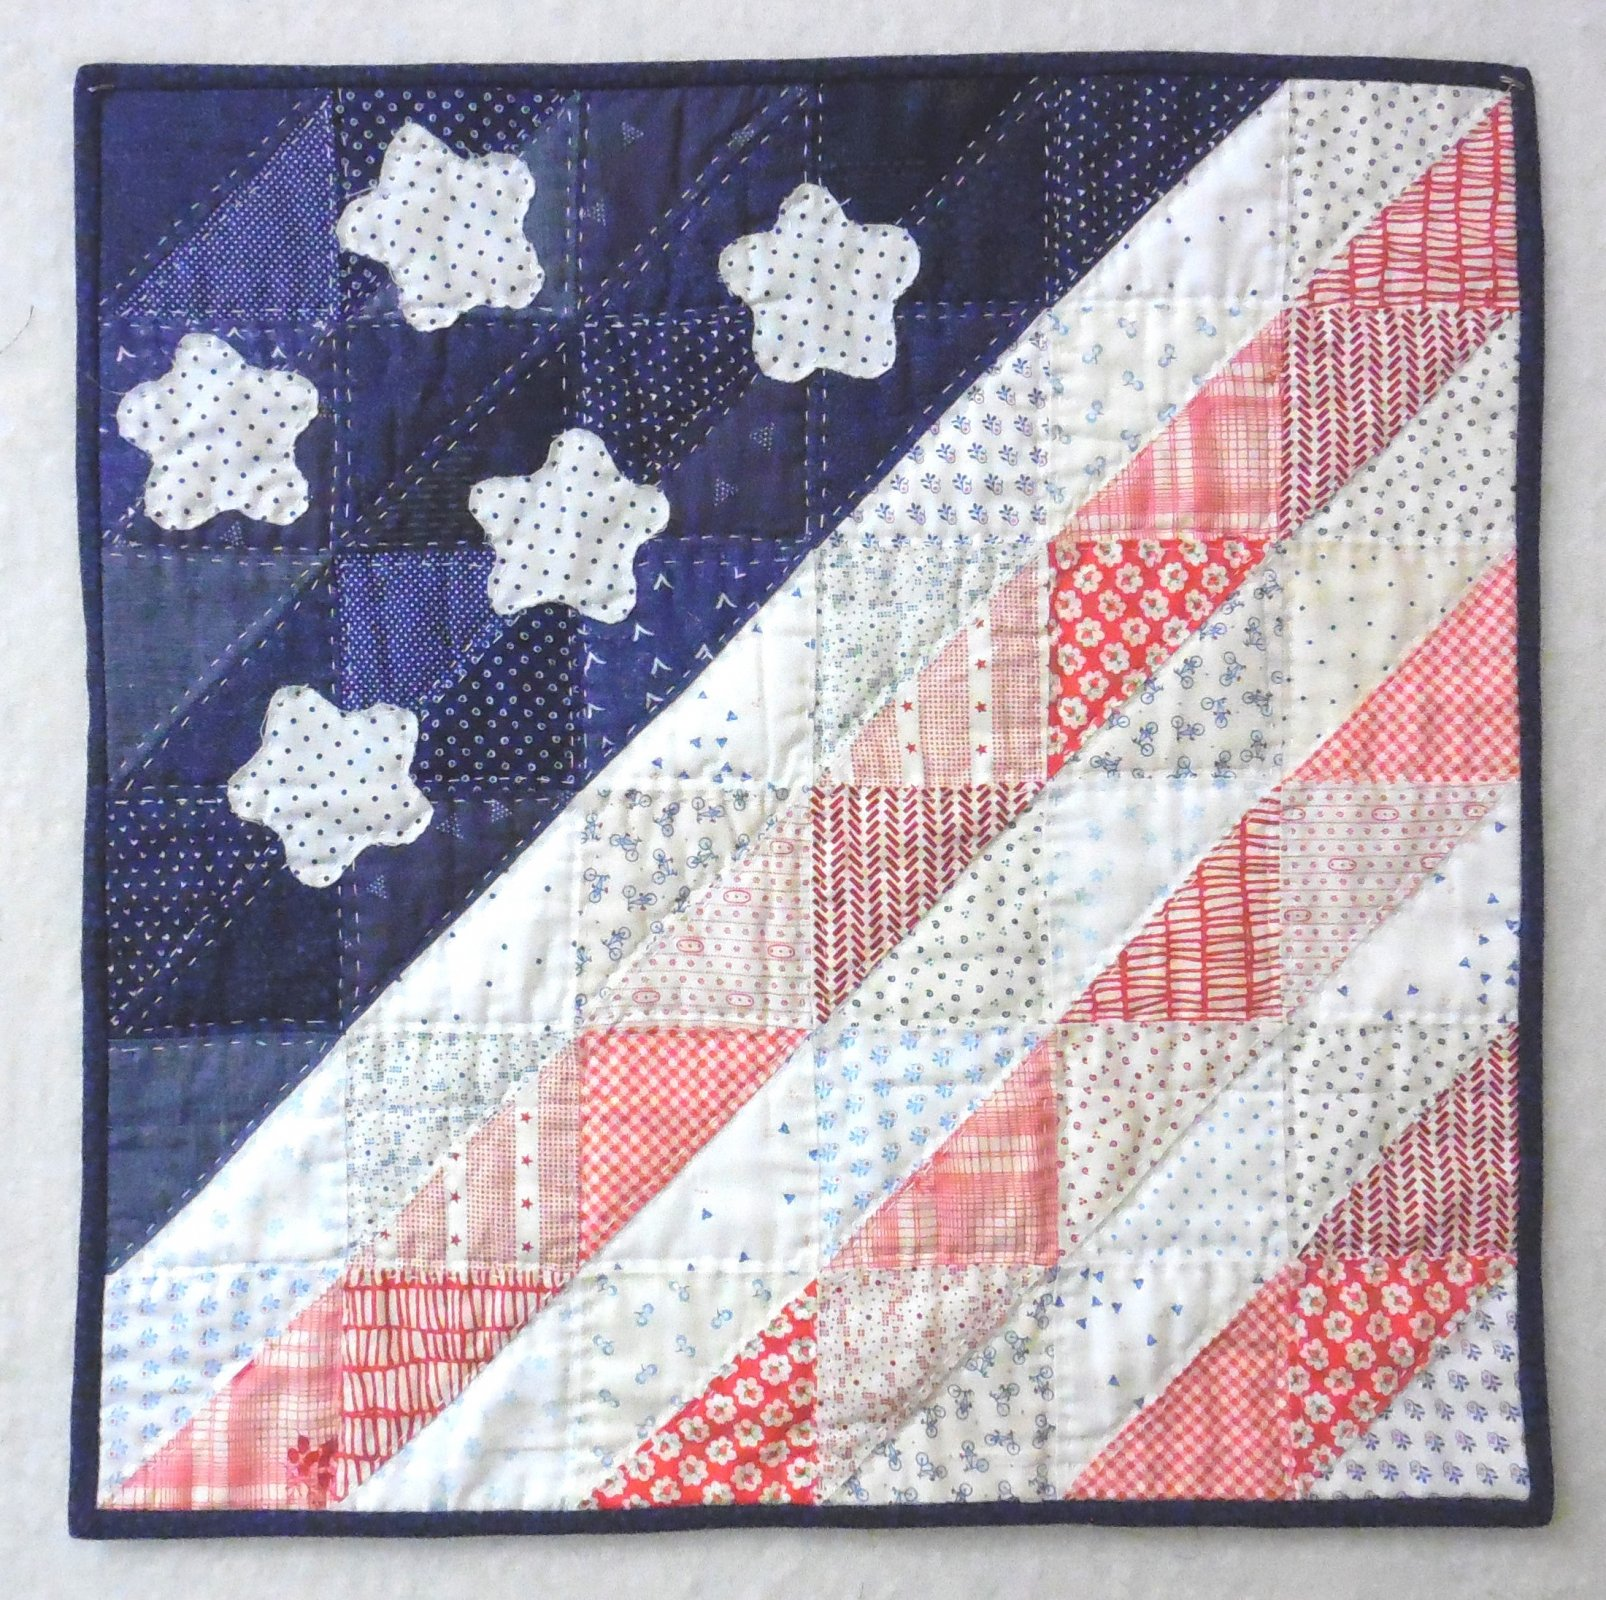 Blue Patriot Kit - 18 1/2 x 18 1/2 - Quilters Trek 2020